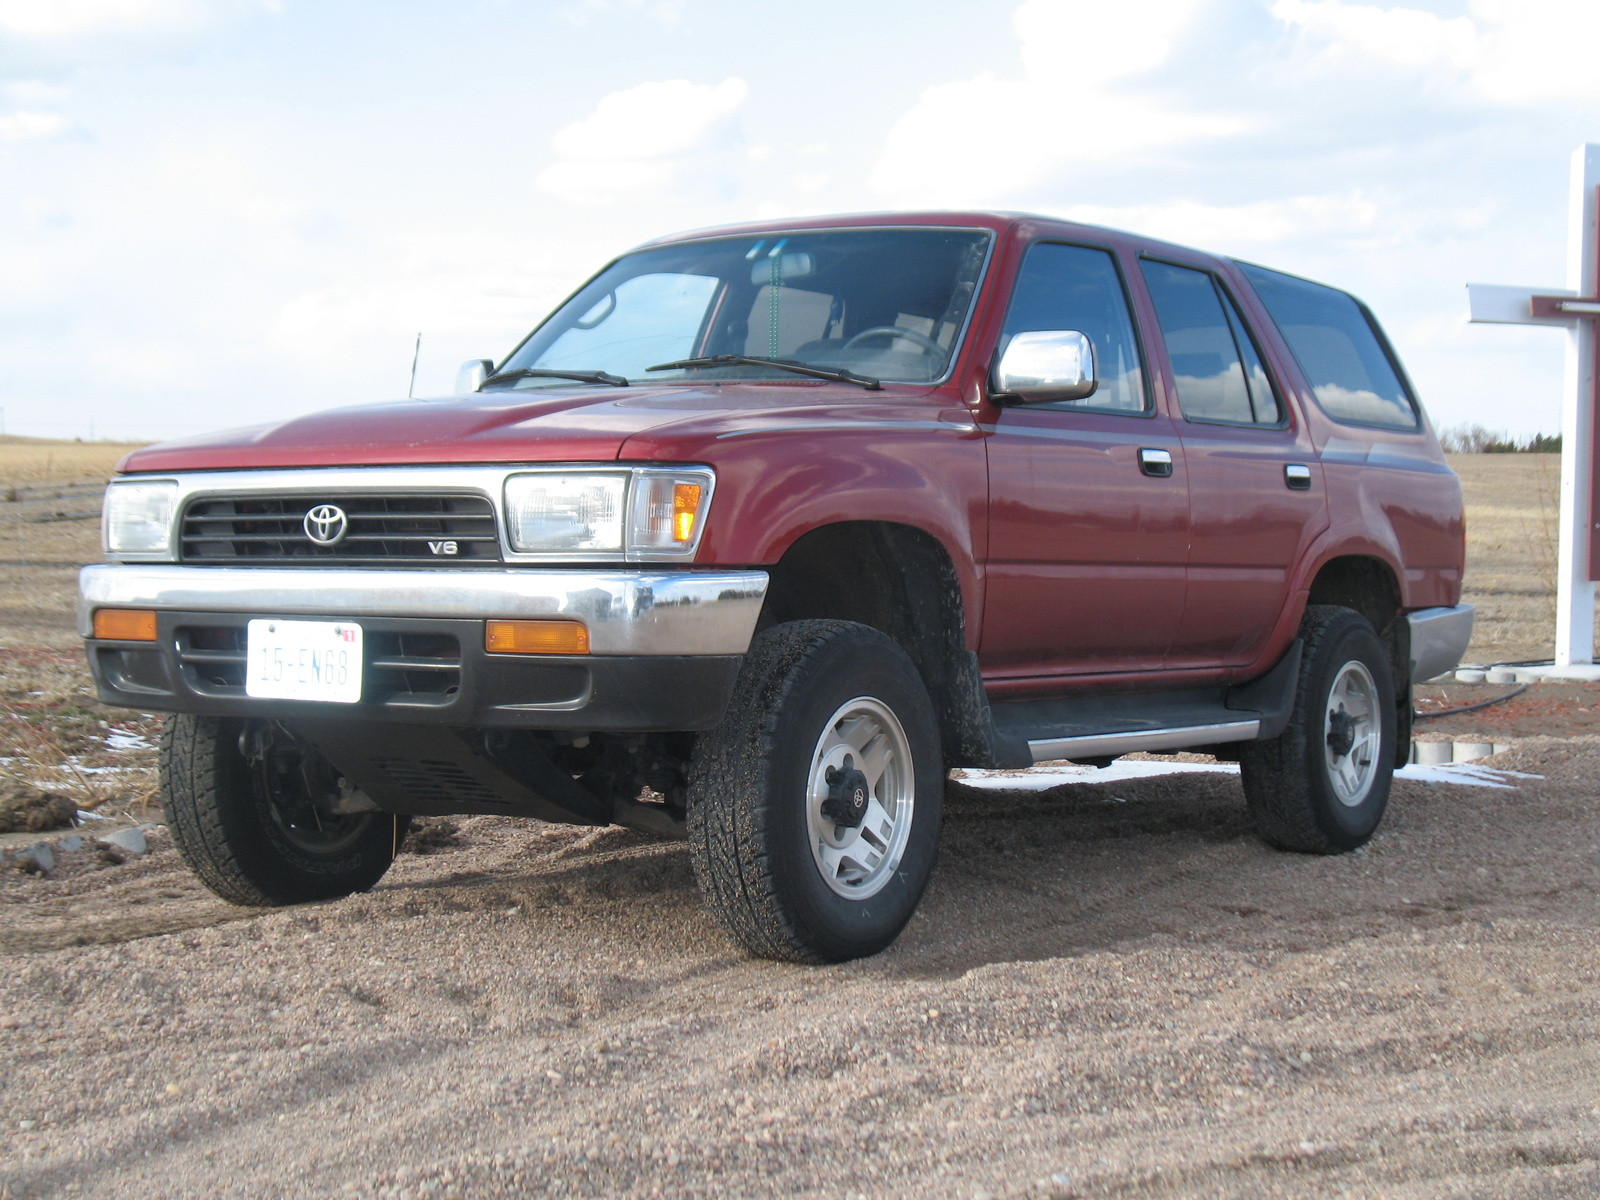 hight resolution of toyota 4 runner workshop owners manual free download rh manuals co 96 toyota 4runner wiring diagram 1996 toyota 4runner engine